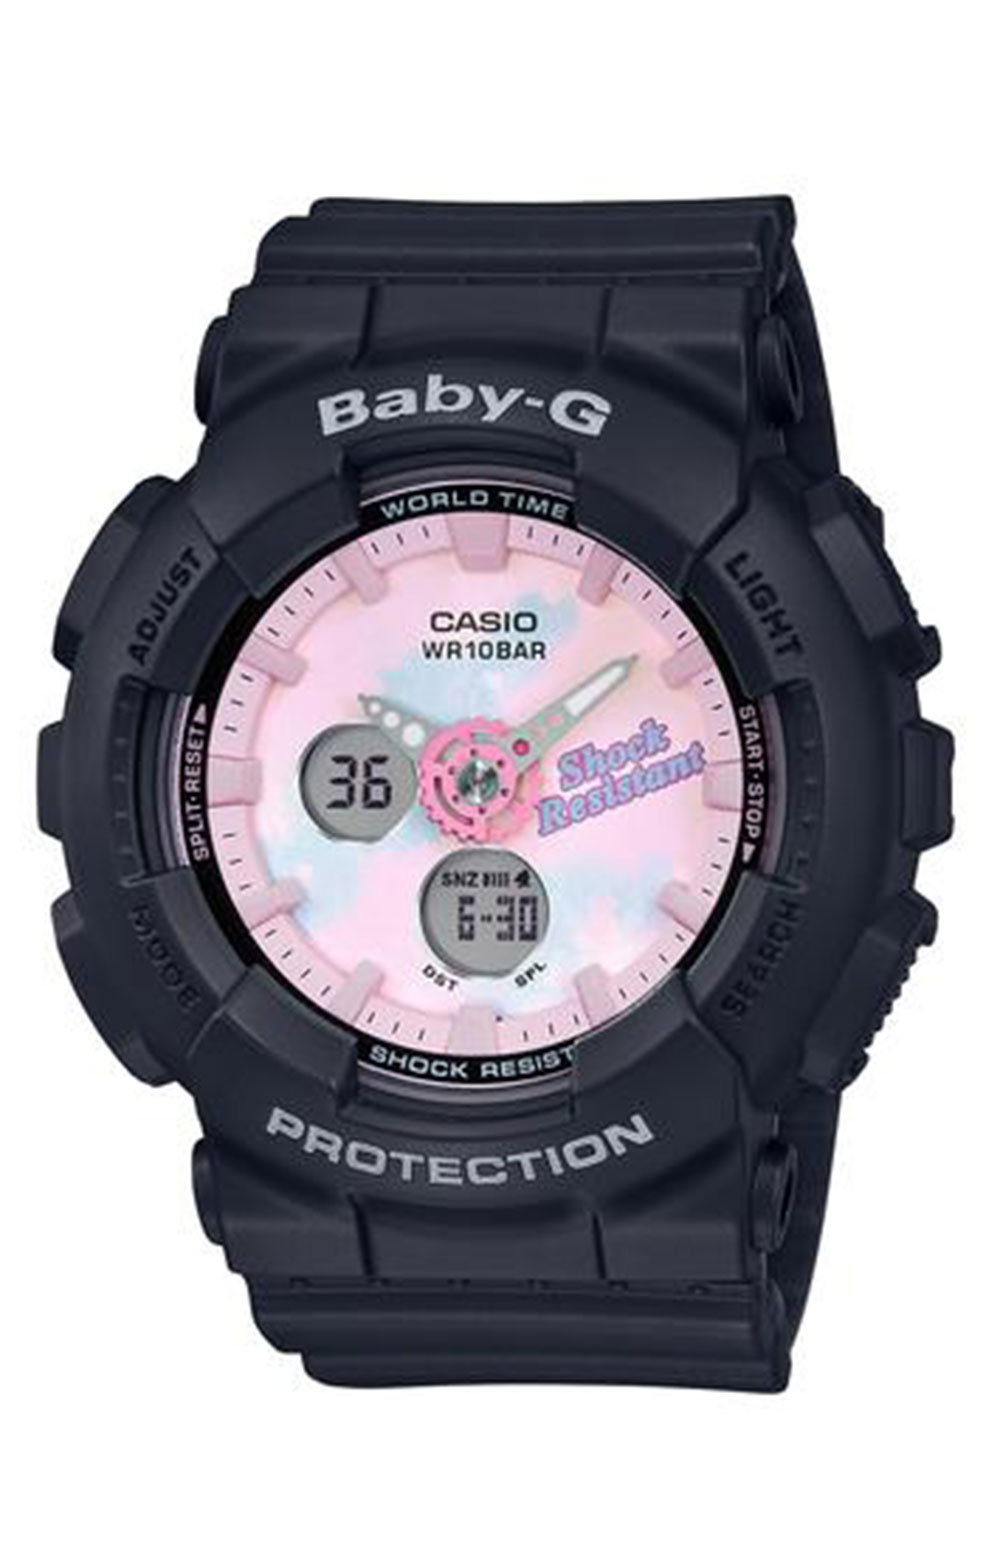 Baby-G BA120T-1A Watch - Black